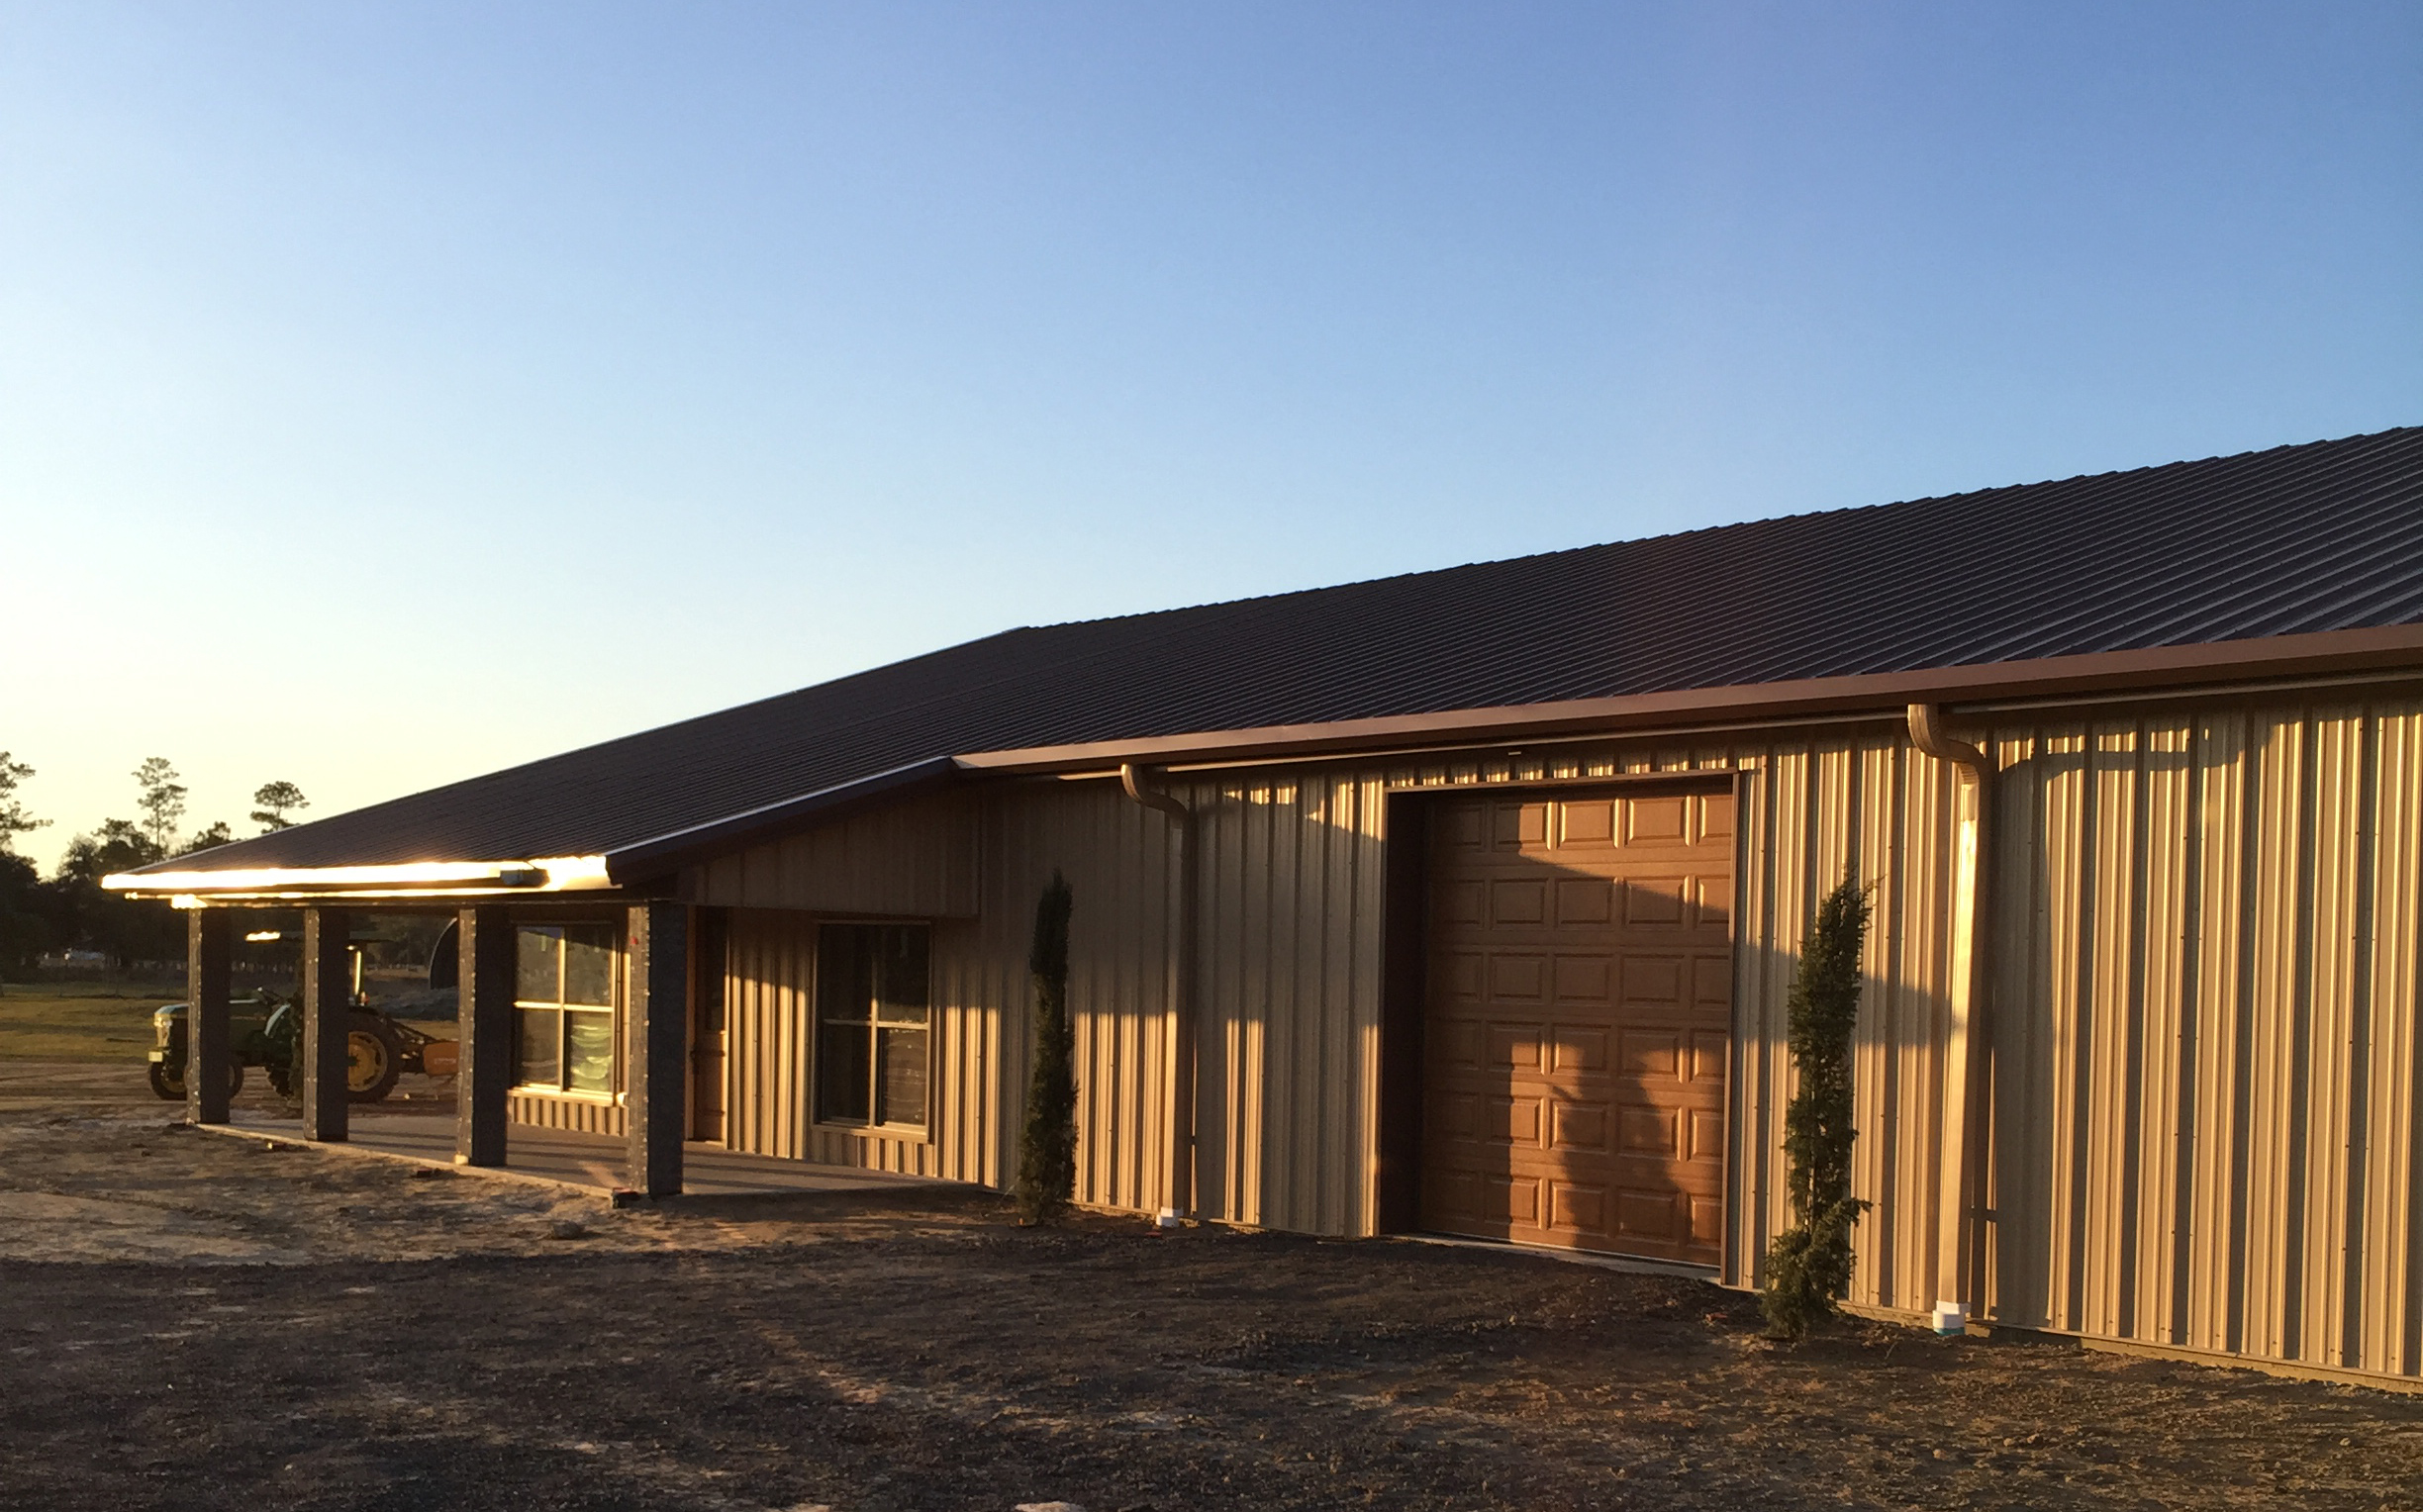 Allied Steel Buildings Completed A Steel Building Project